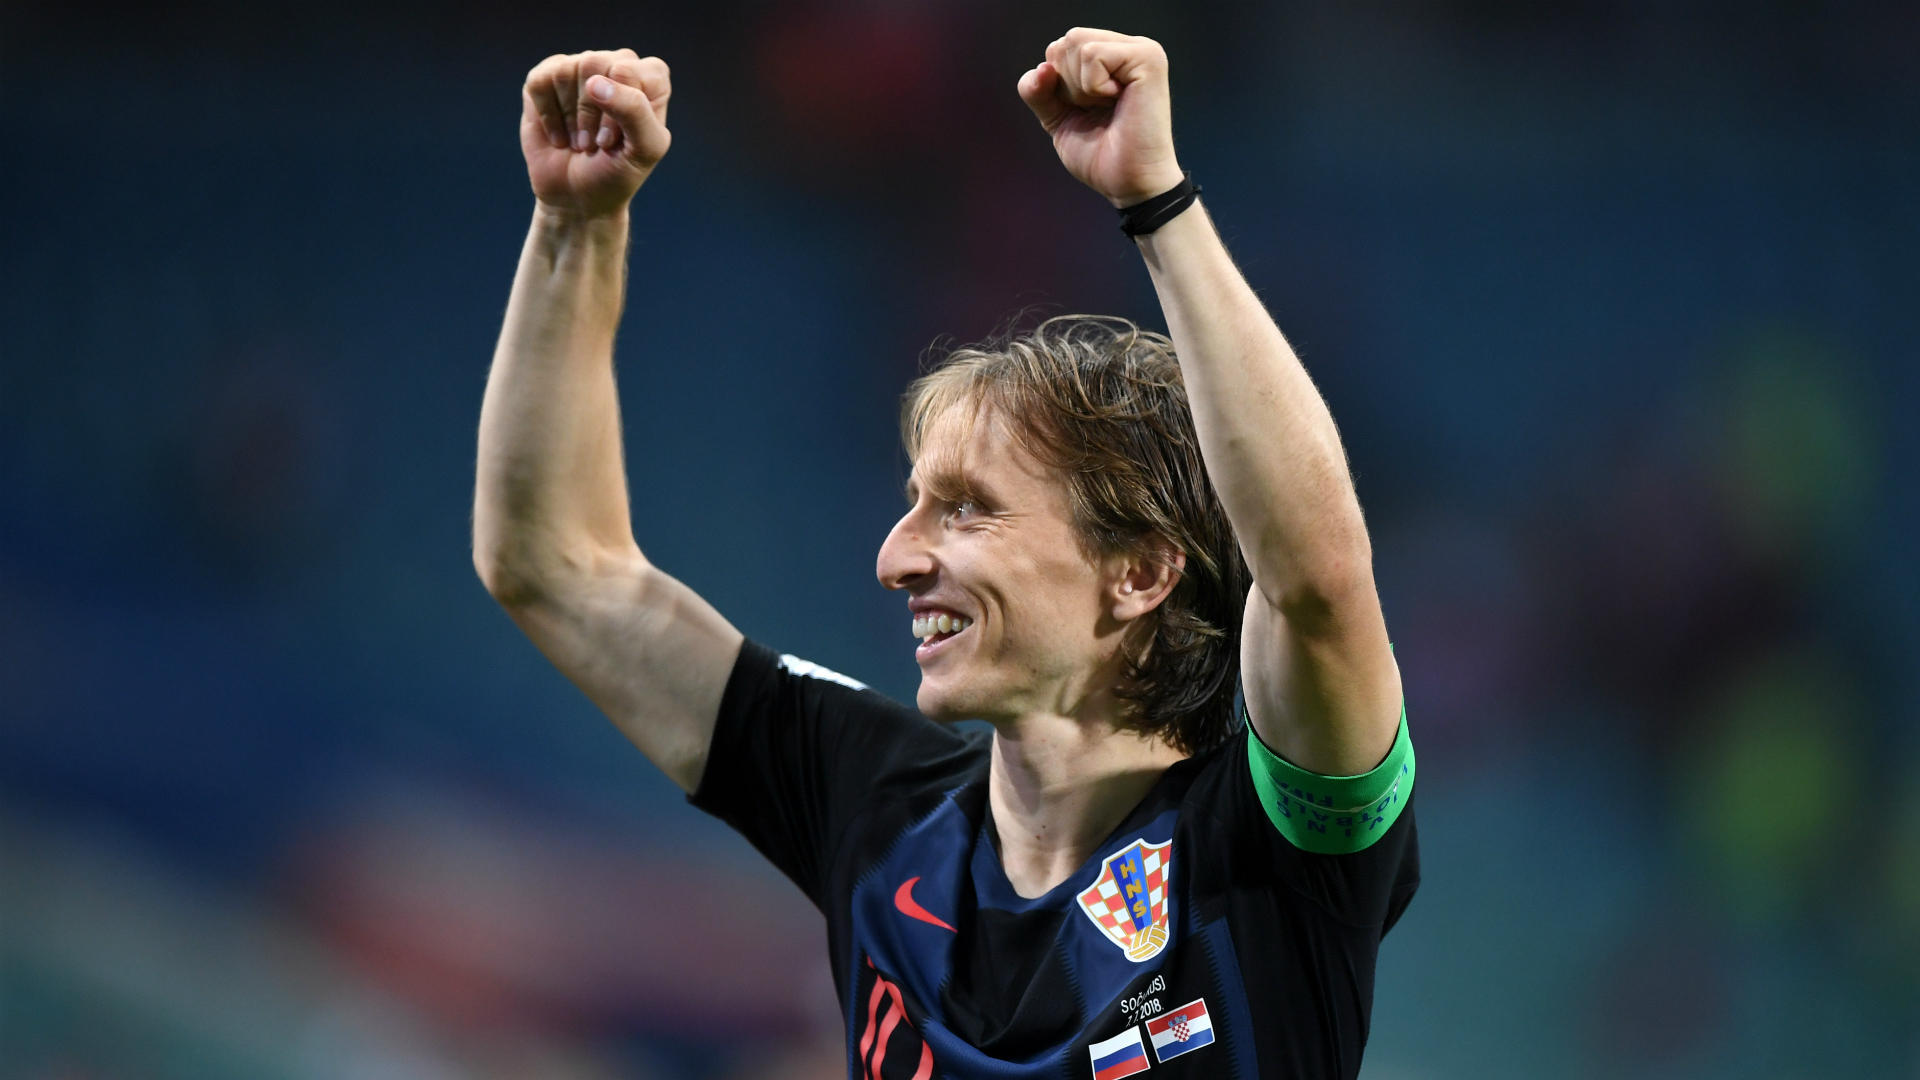 Croatia's success is much more important than me, says Luka Modric